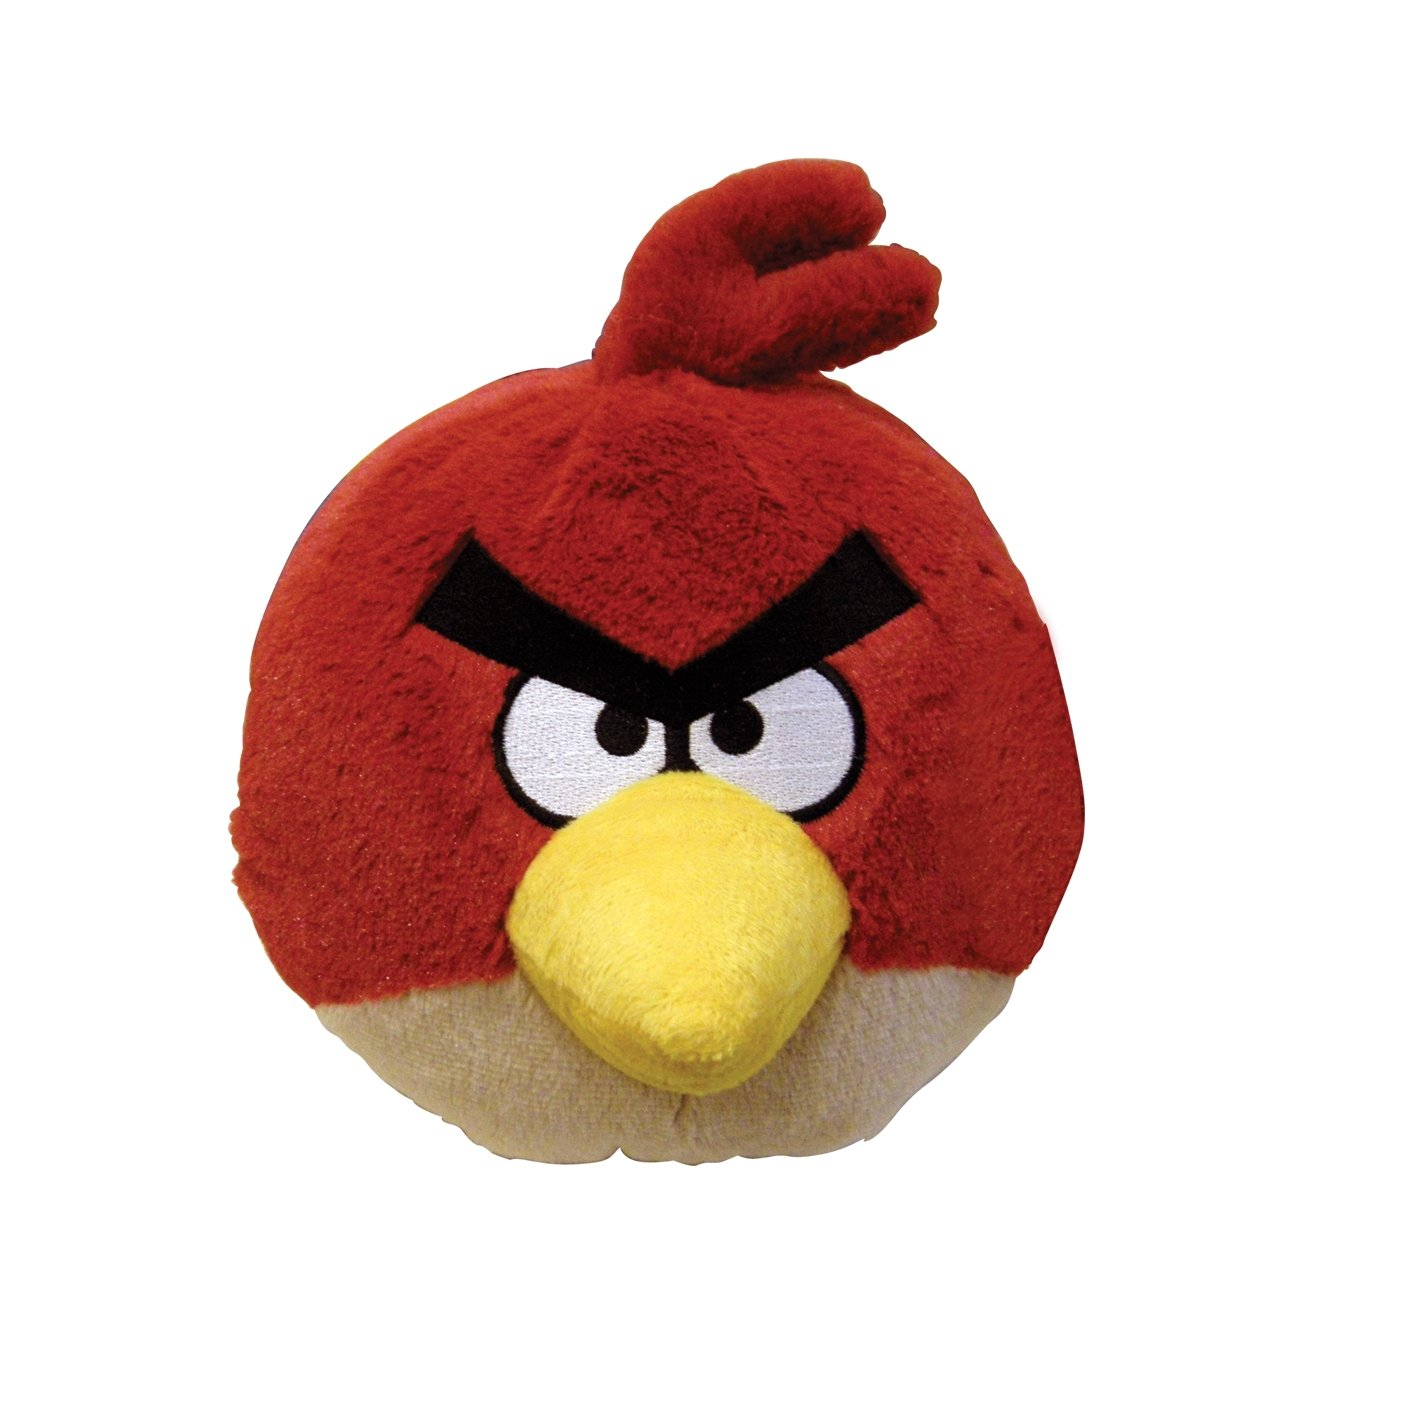 Angry Birds Toys With Sound : Angry birds plush inch red bird with sound new toys